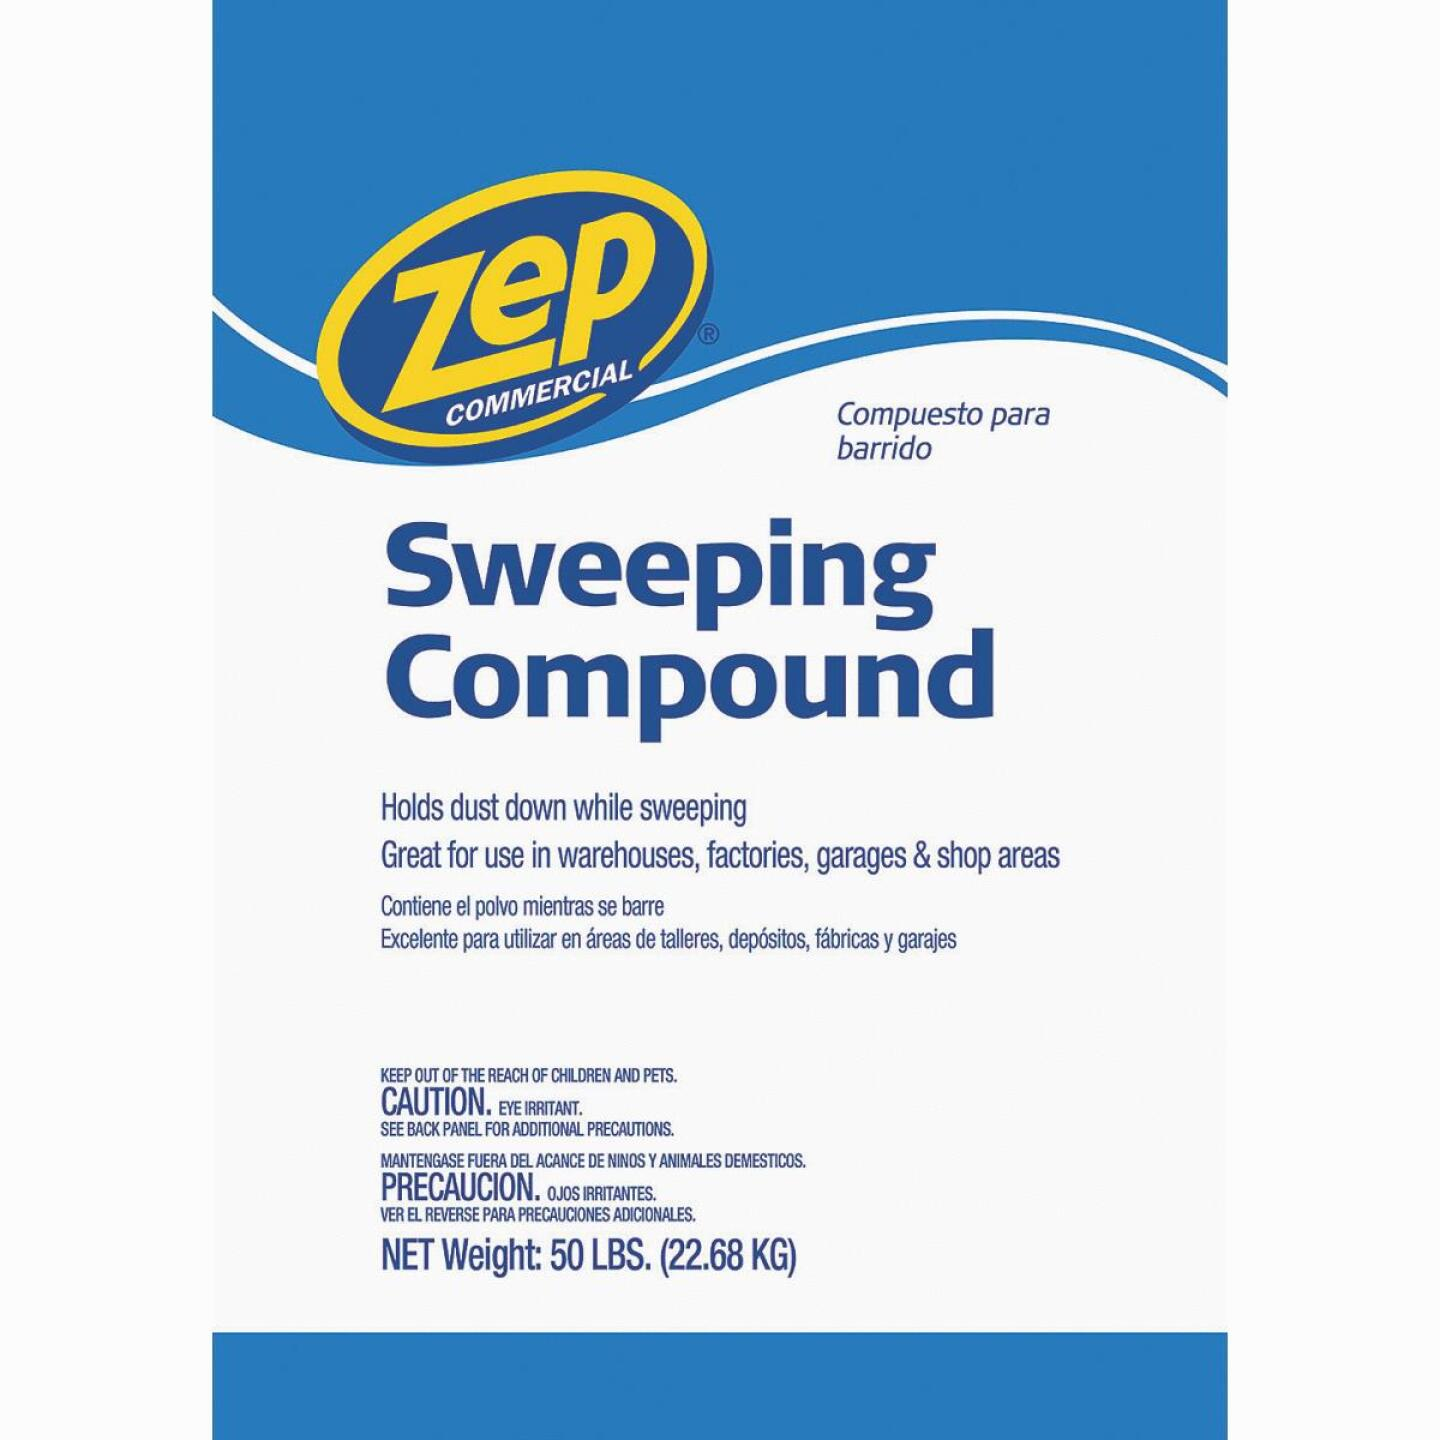 Zep Commercial 50 Lb. NonSoy Sweeping Compound Image 1